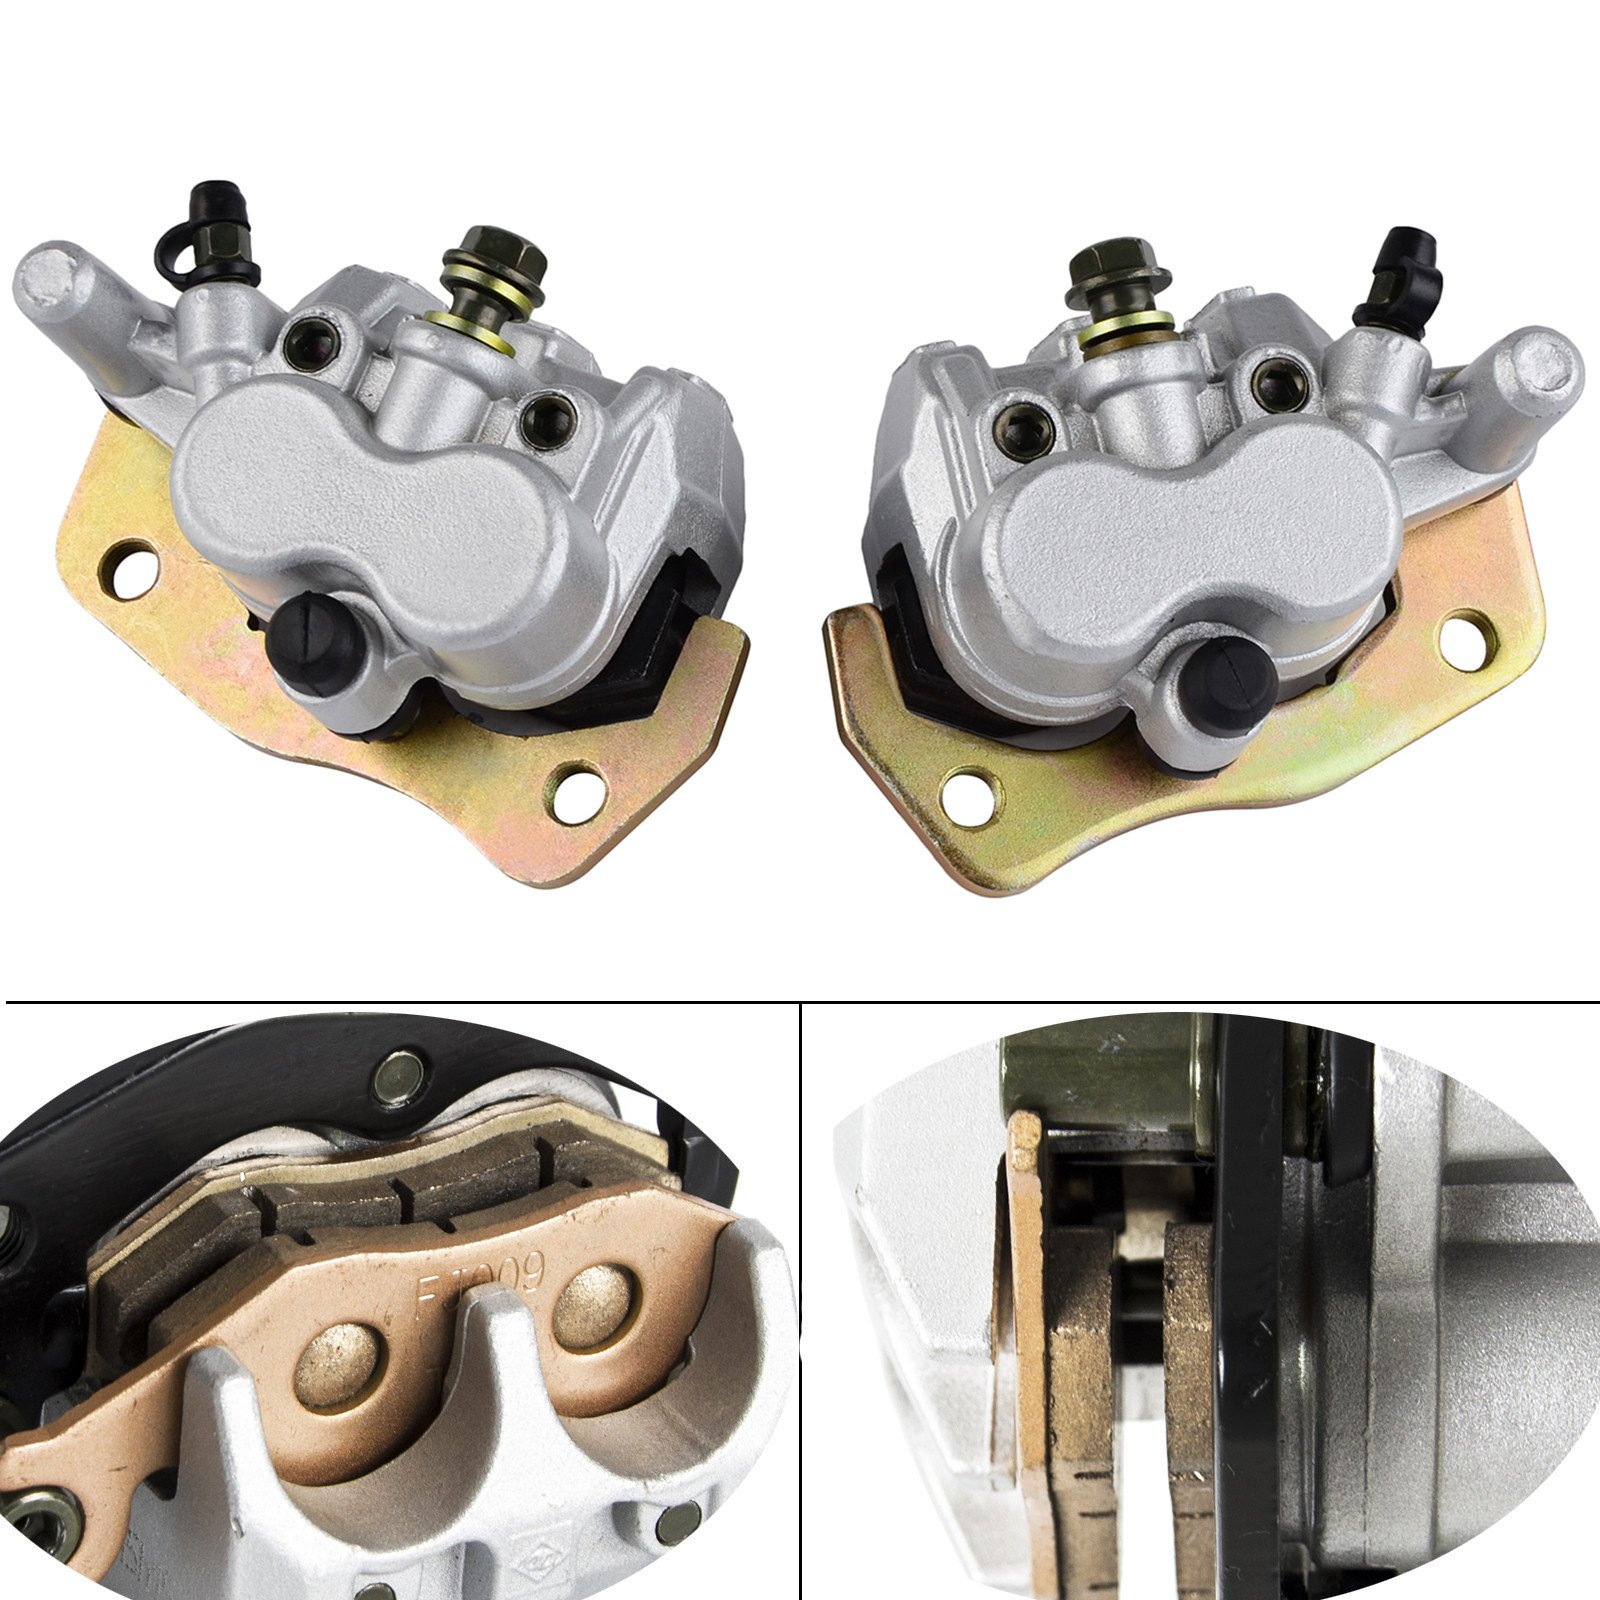 NICECNC Front Right & Left Brake Caliper With Pads for YAMAHA UTV RHINO 660 YXR660 YXR450 2004-2009 RHINO 450 2006-2009 RHINO 700 2008-2013 SUZUKI BURGMAN AN400 2007-2011 by NICECNC